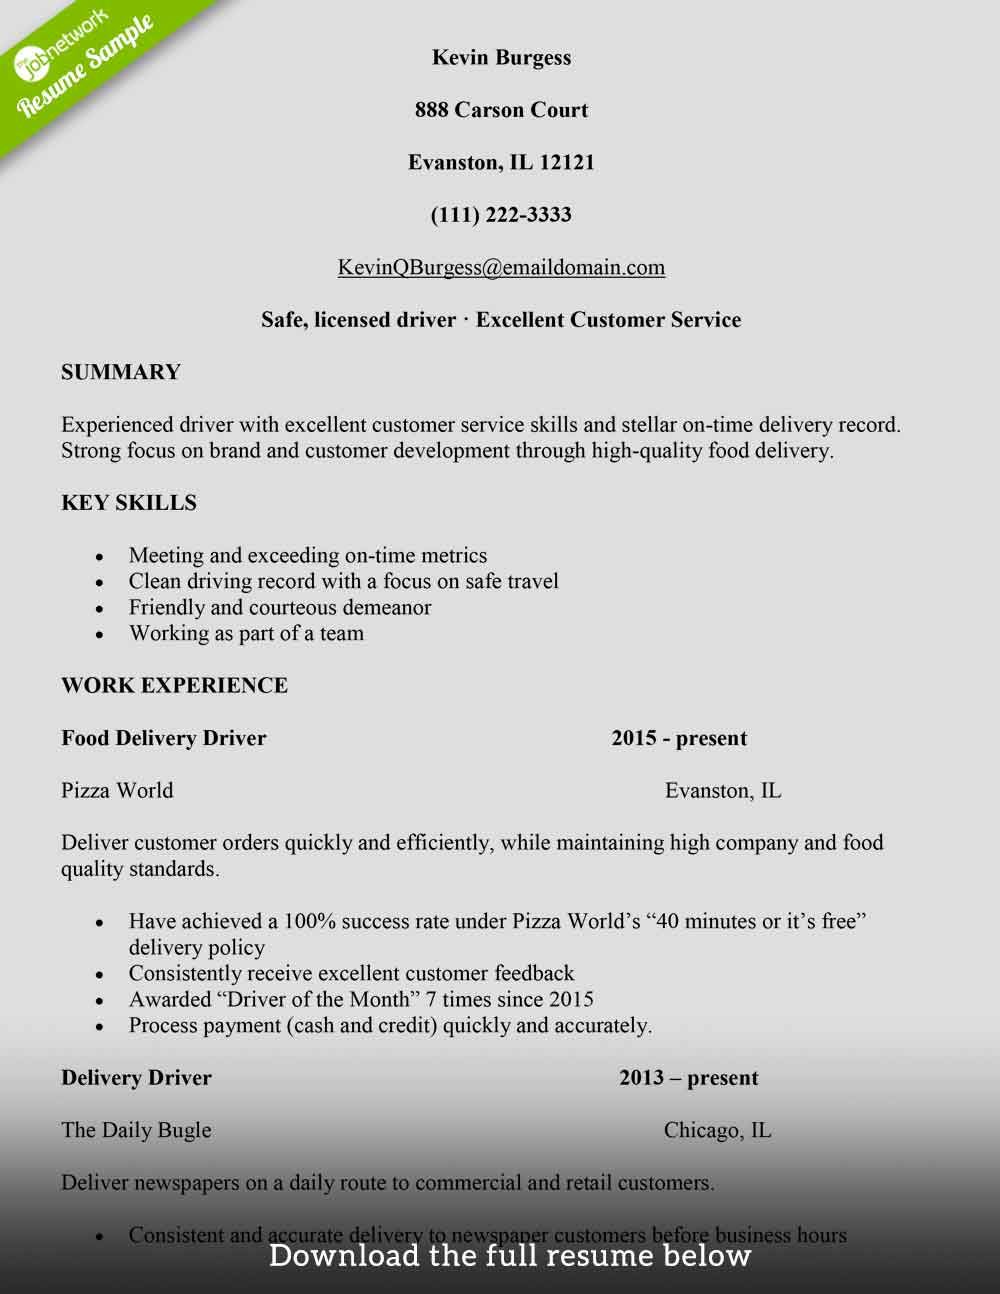 How To Write A Resumer How To Write A Delivery Driver Resume With Examples The Jobnetwork